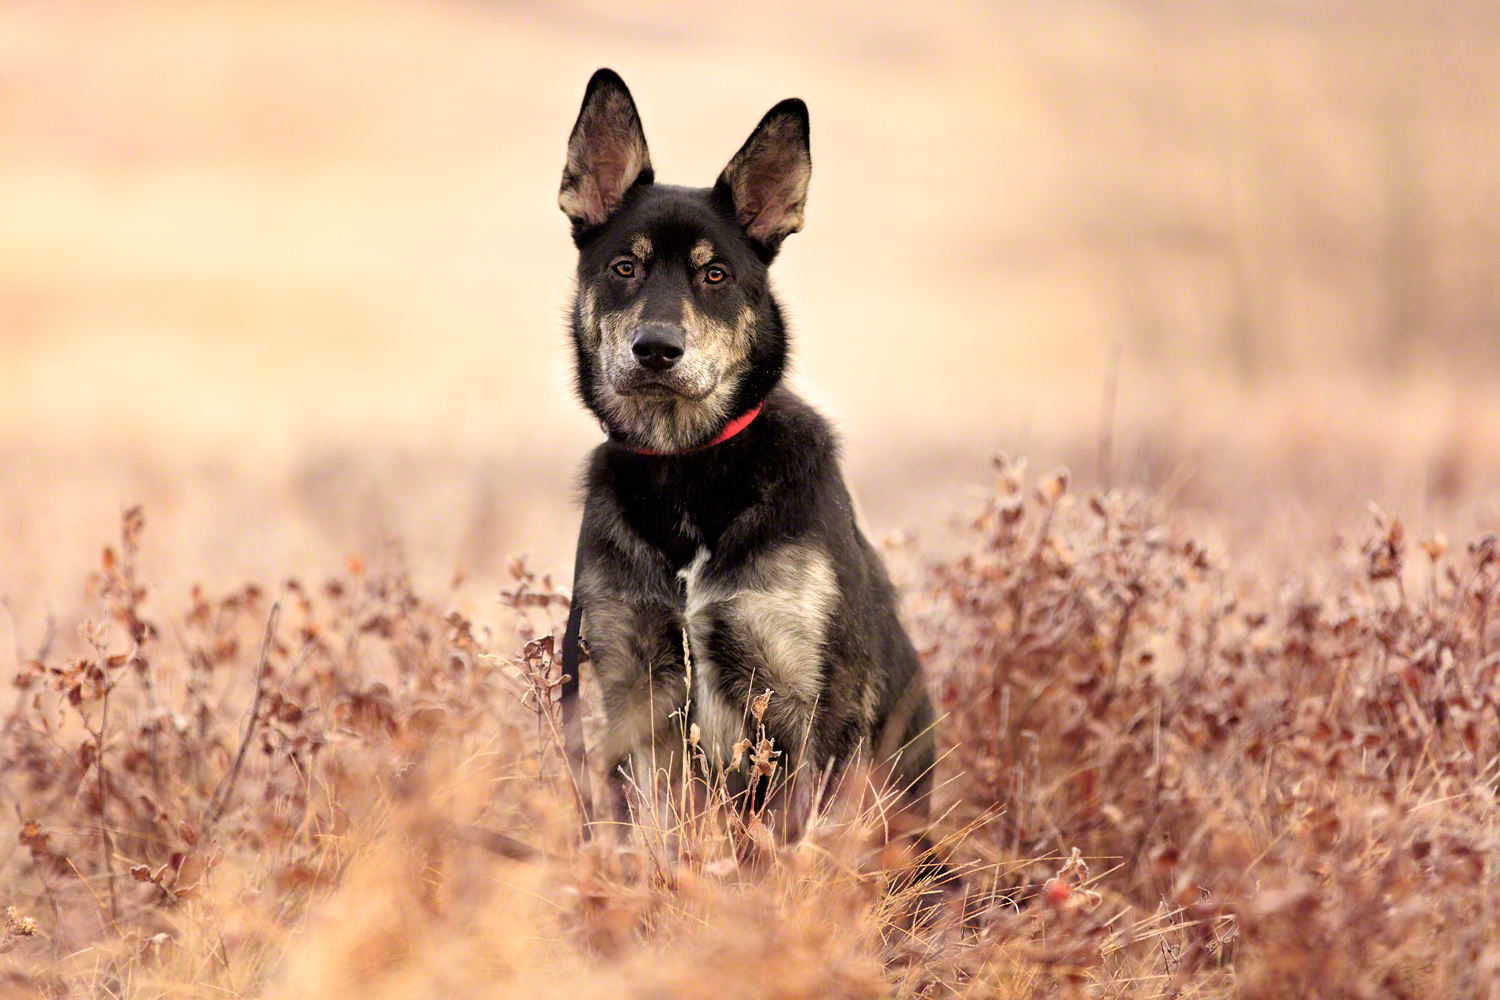 the_dog_with_a_bow_photography_calgary_pet_dogs-2.jpg